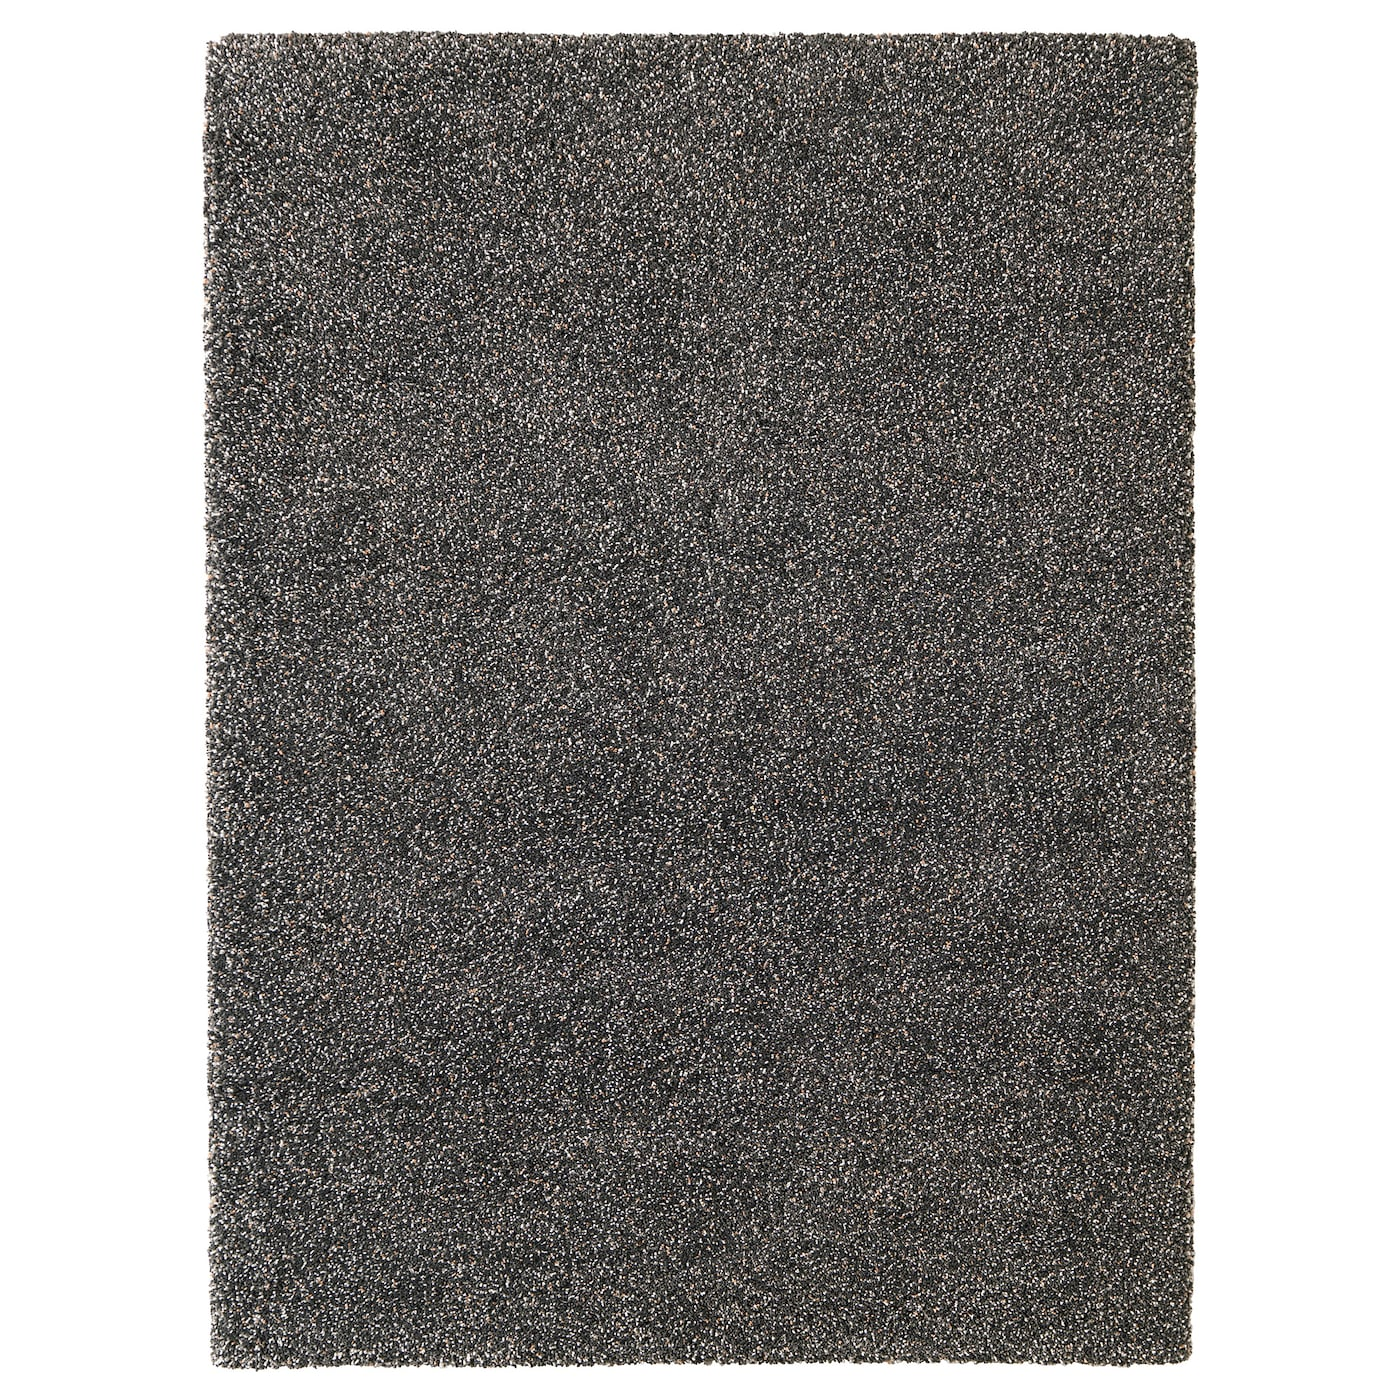 tapis de salon grands tapis de sol de salon pas cher ikea belgique. Black Bedroom Furniture Sets. Home Design Ideas